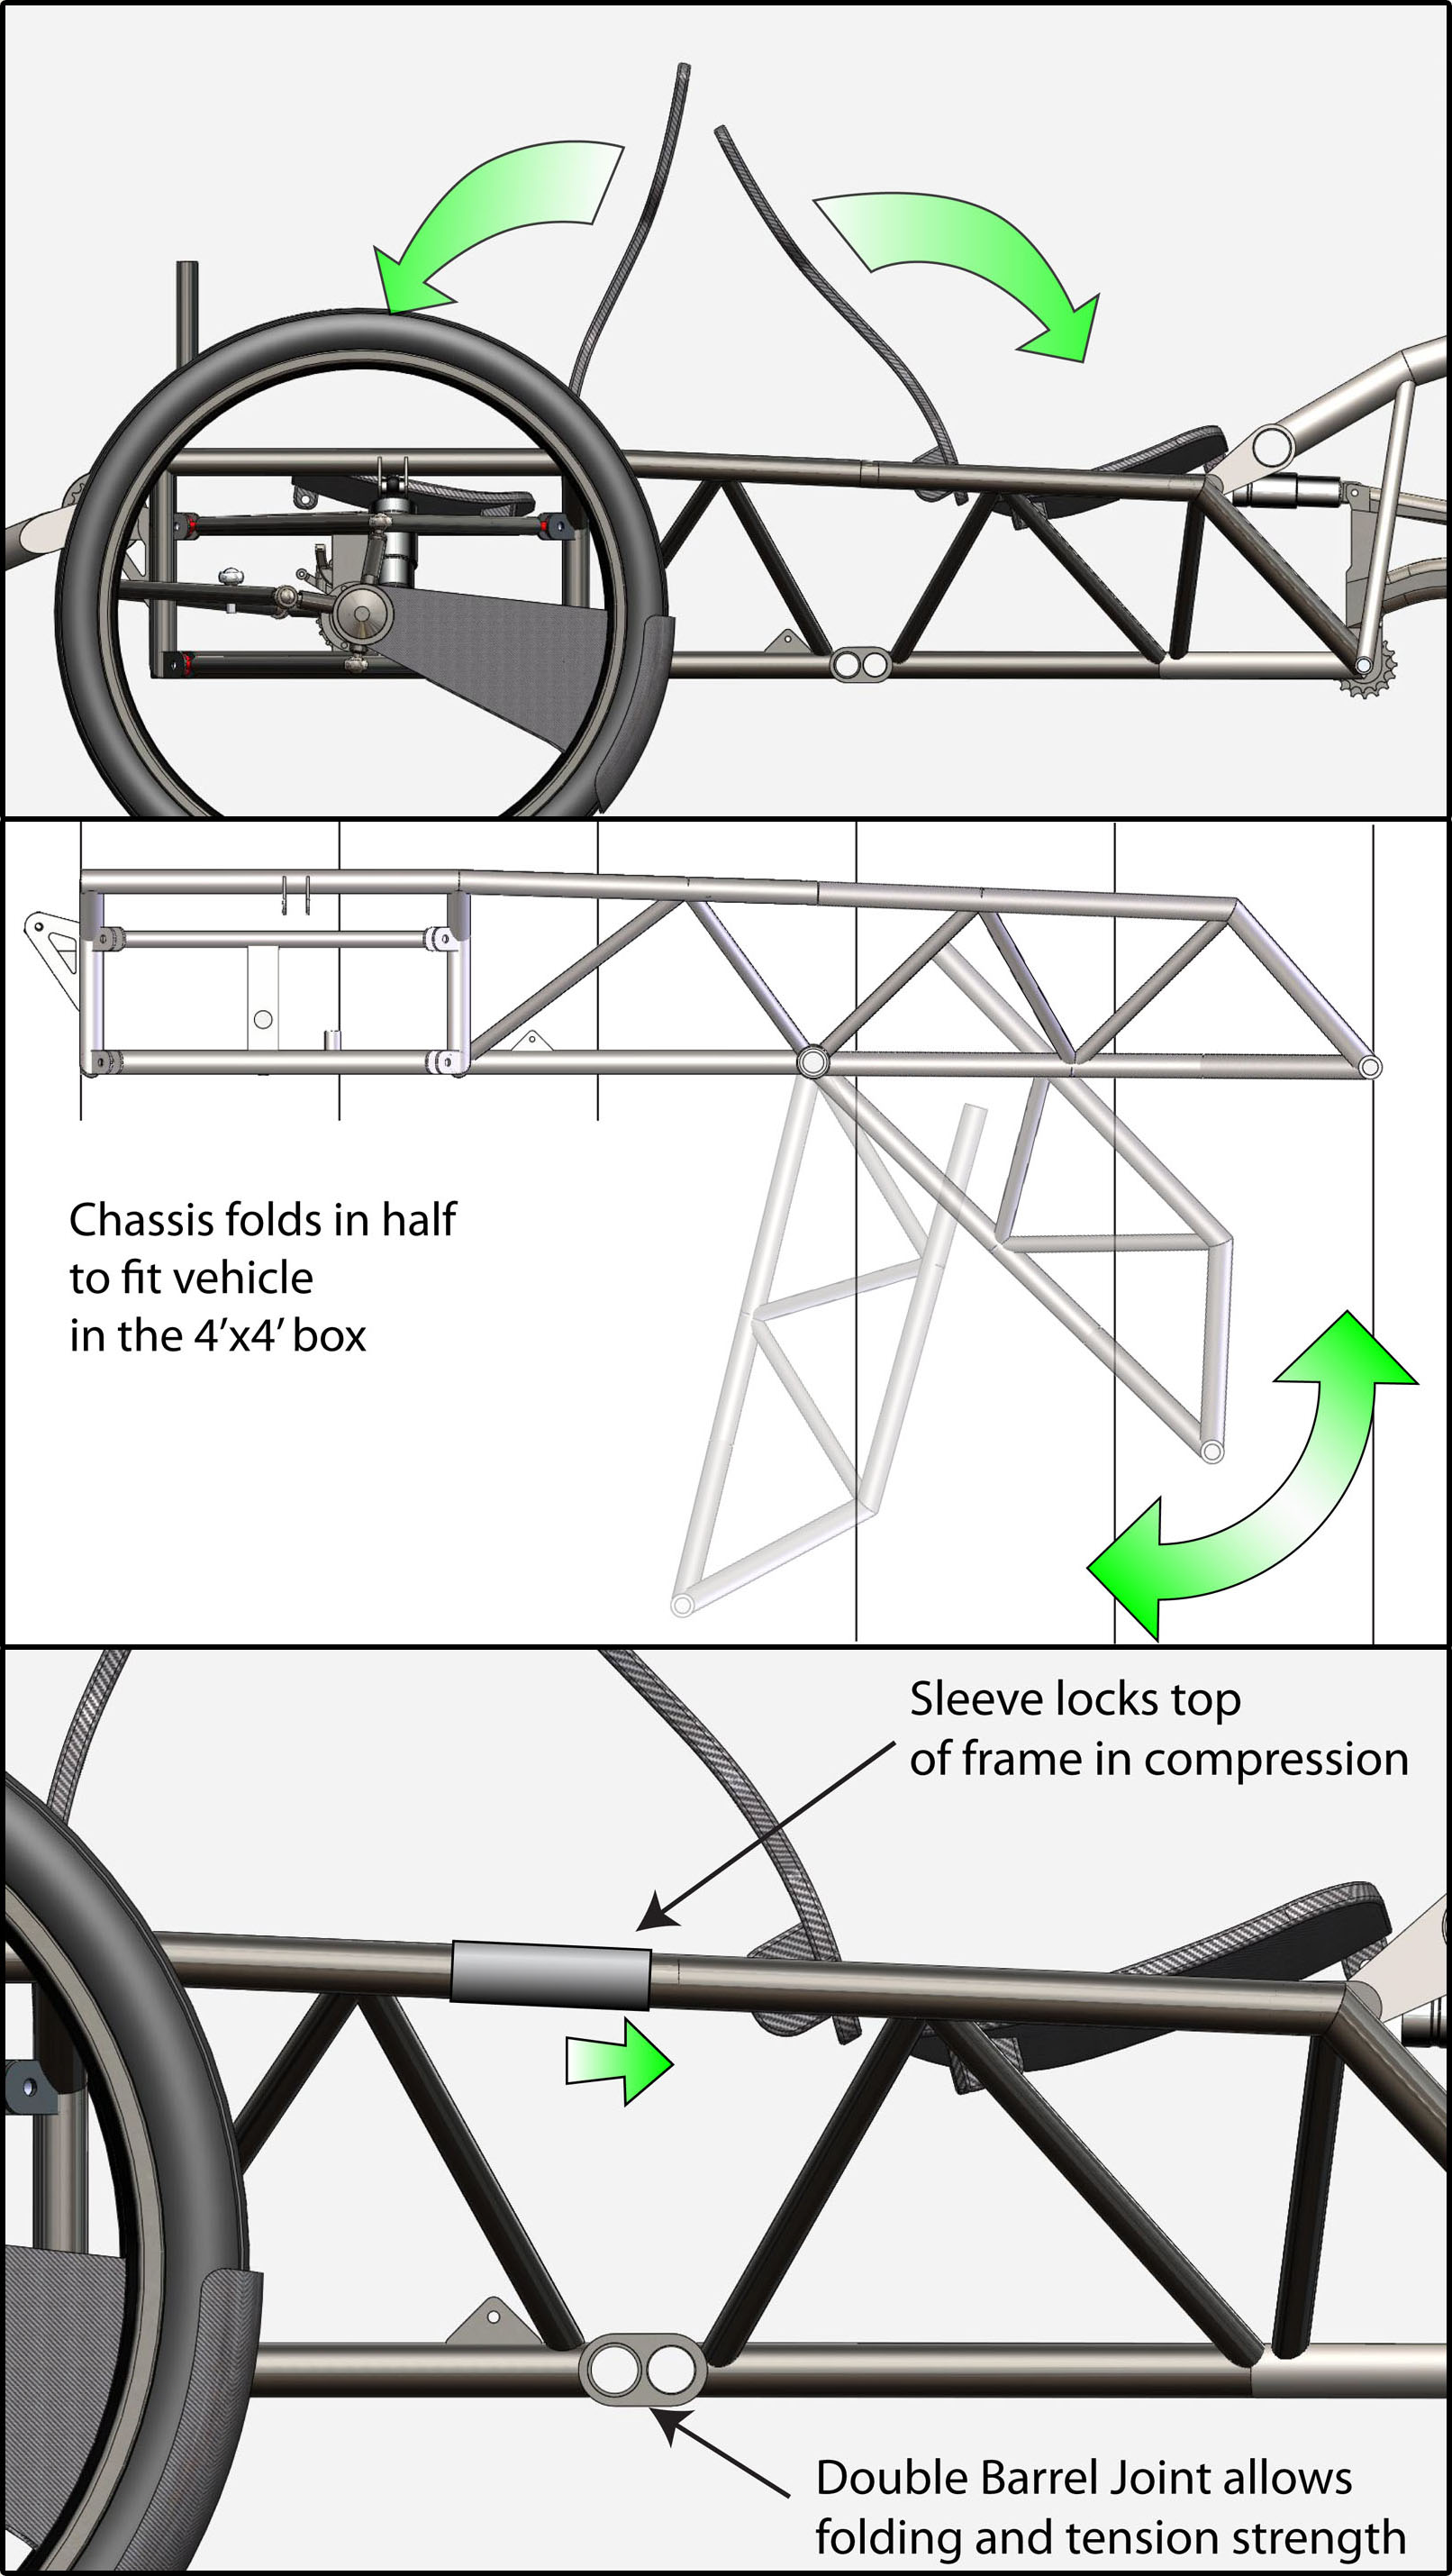 Chassis and Seat Folding Mechanism